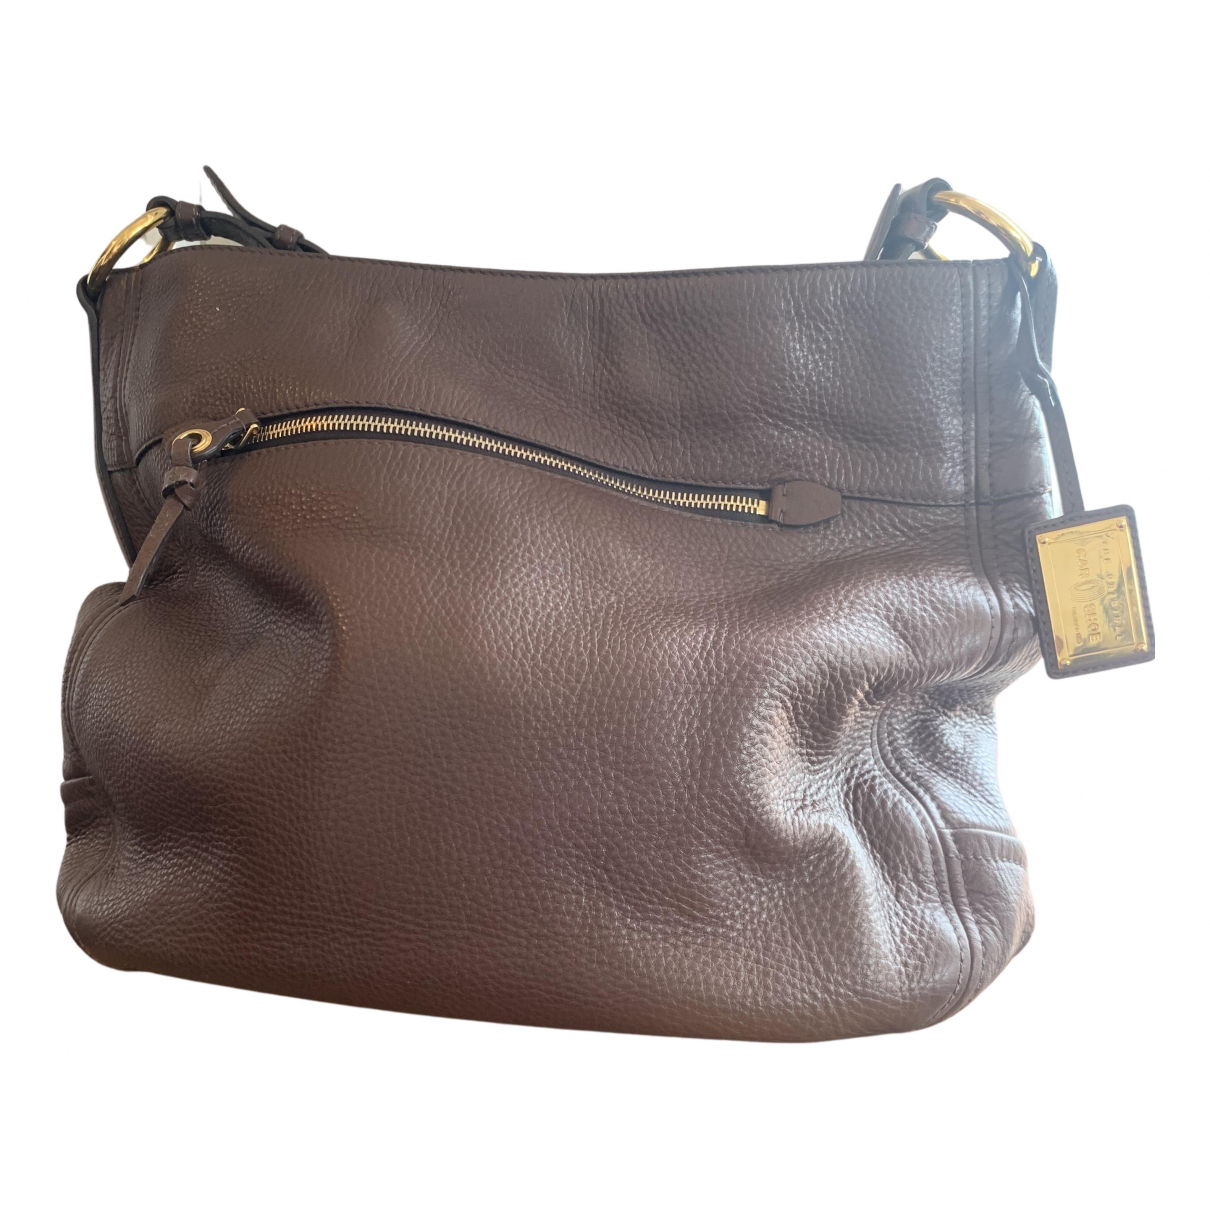 Carshoe N Brown Leather handbag for Women N